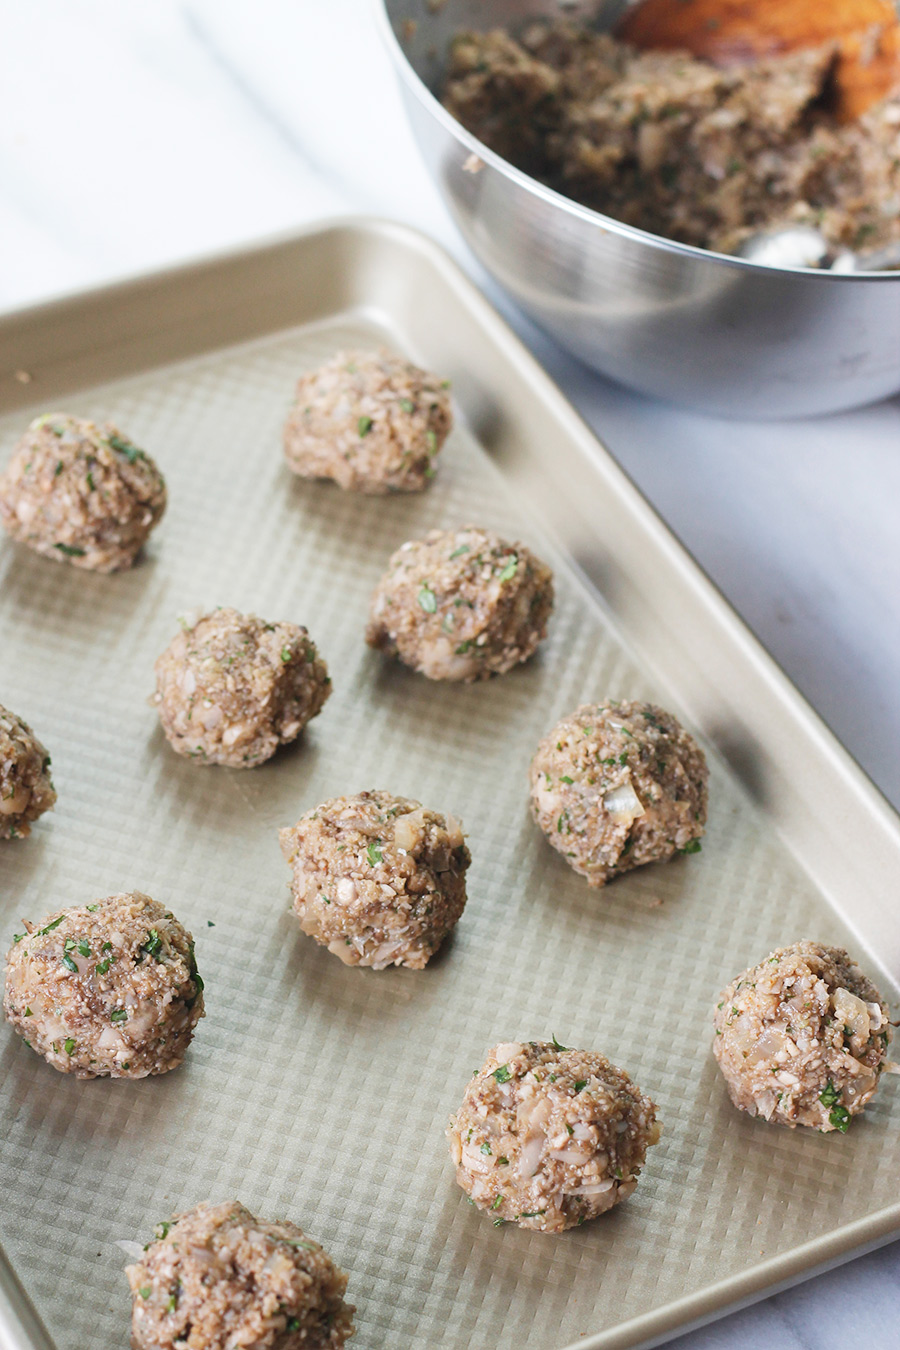 Uncooked meatless meatballs on shallow baking pan.